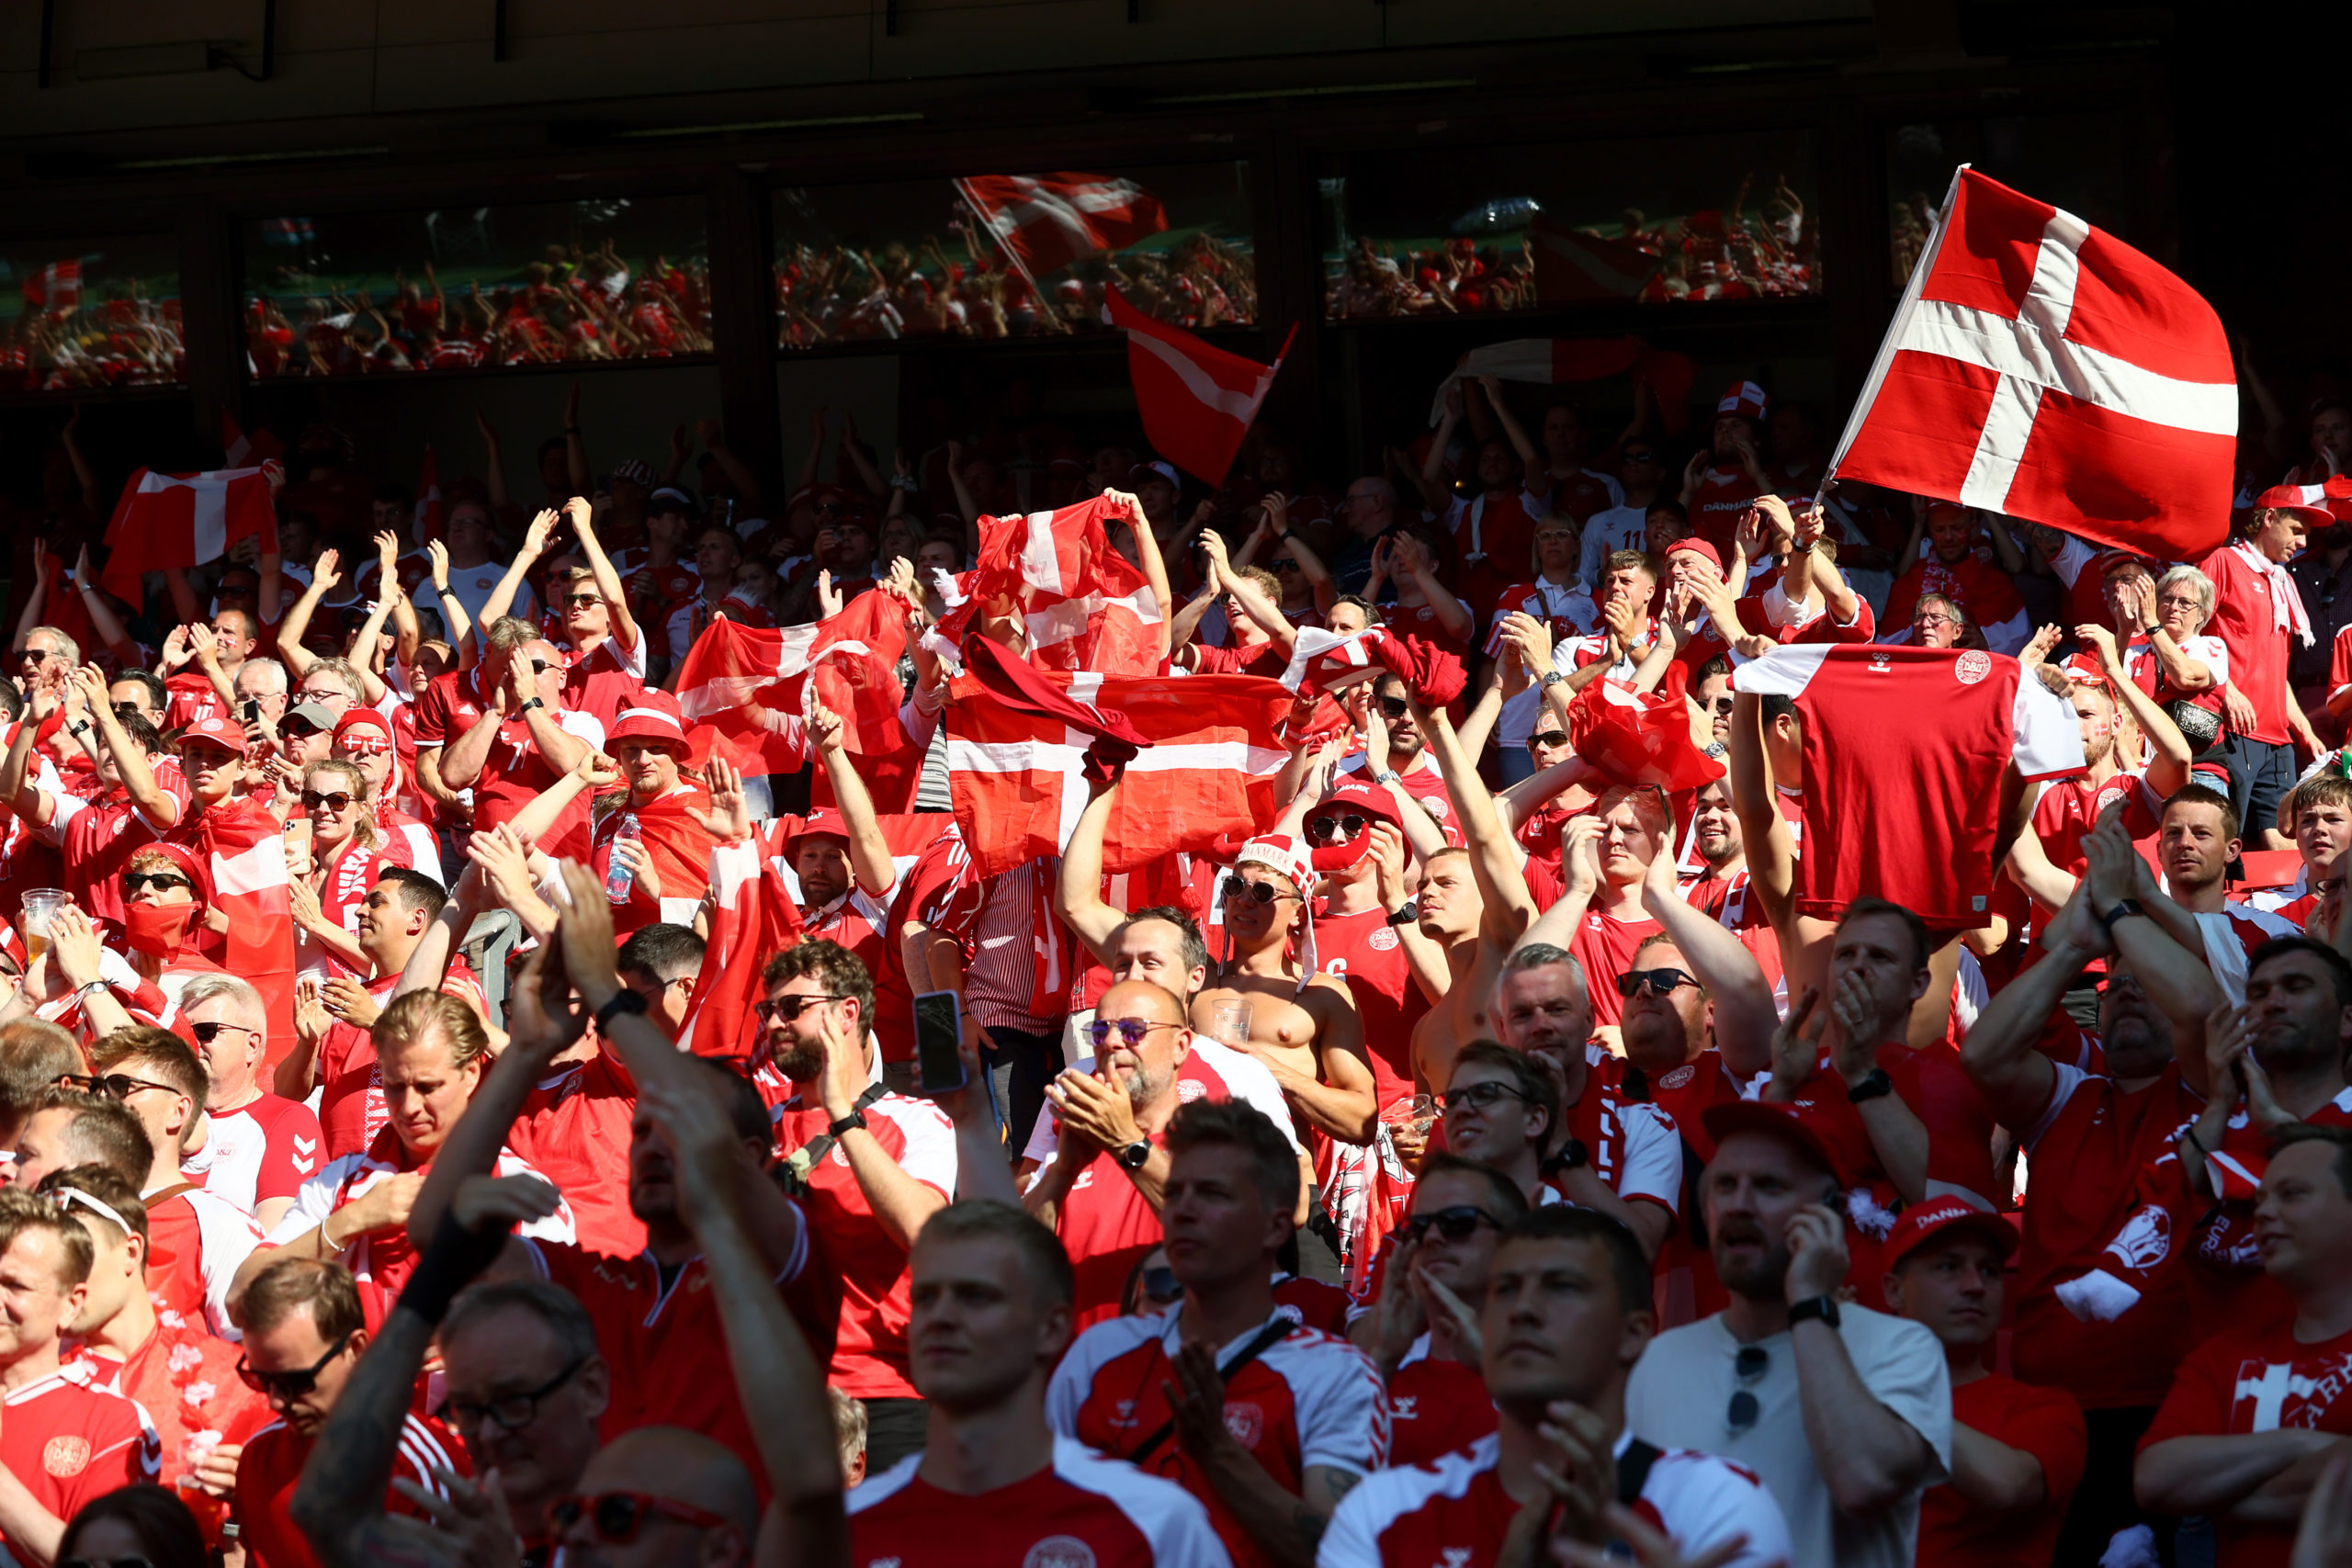 Denmark fans at the Belgium game